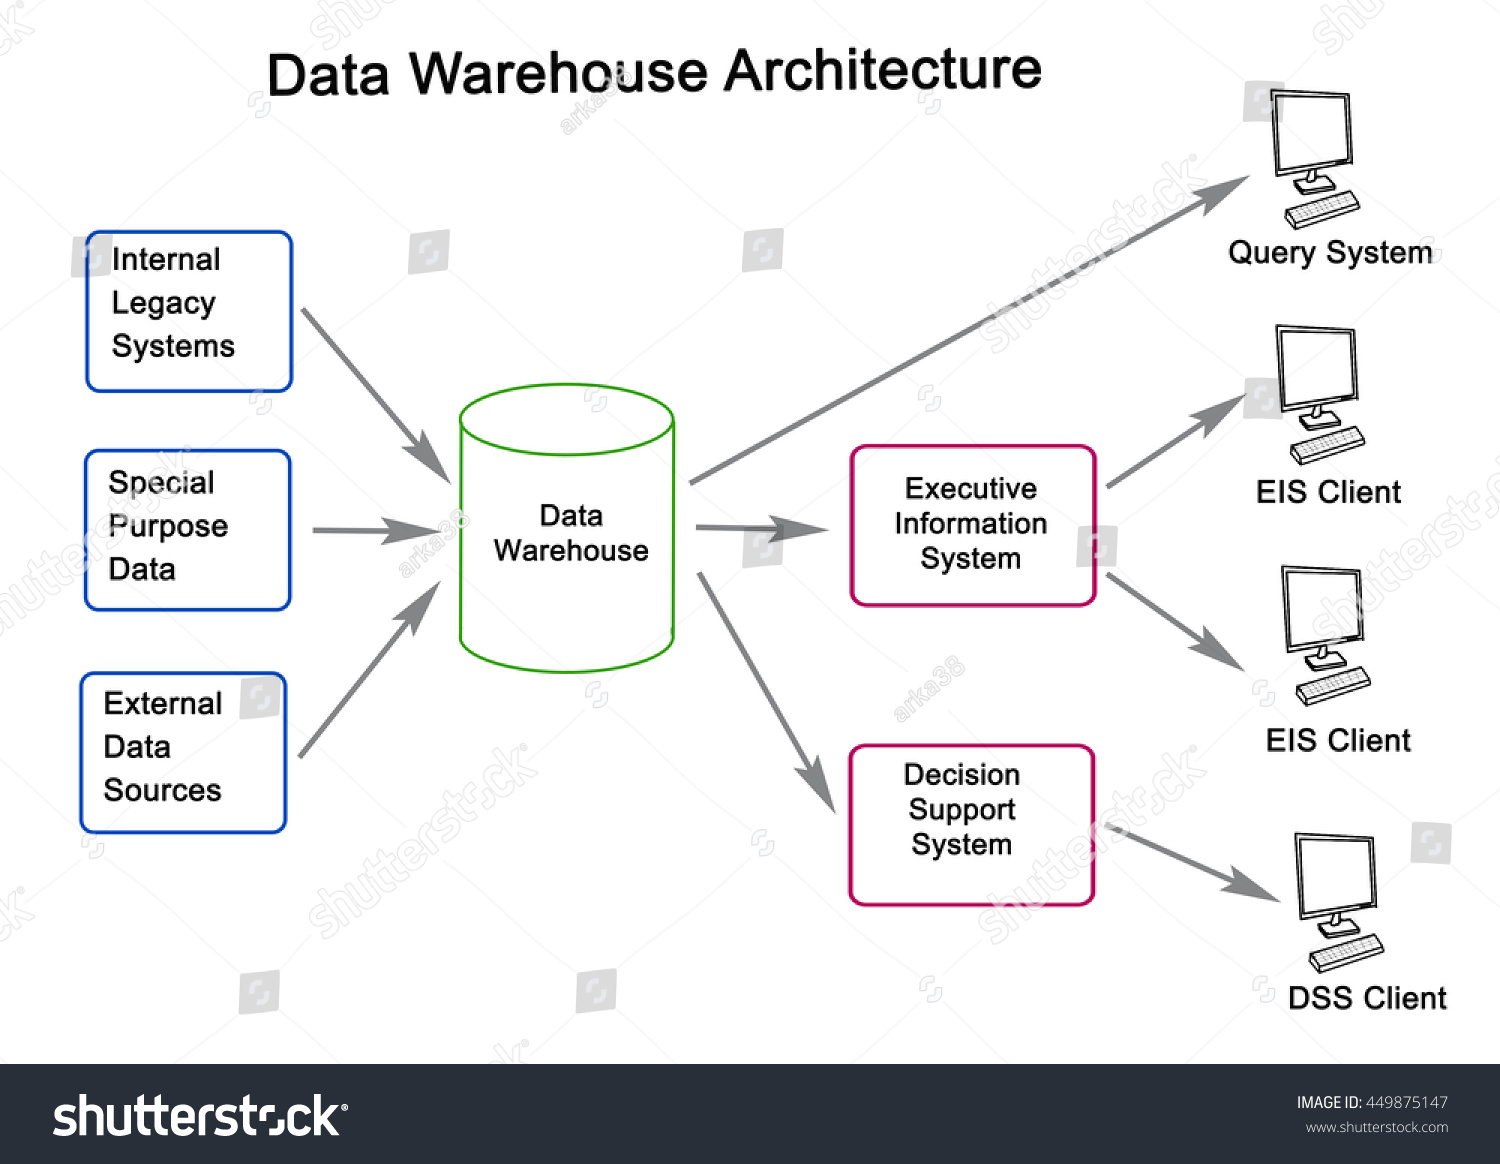 architecture of data warehouse Get started with azure sql data warehouse for an enterprise-class sql server experience data warehouse solutions offer flexibility, scalability, and big data insights.